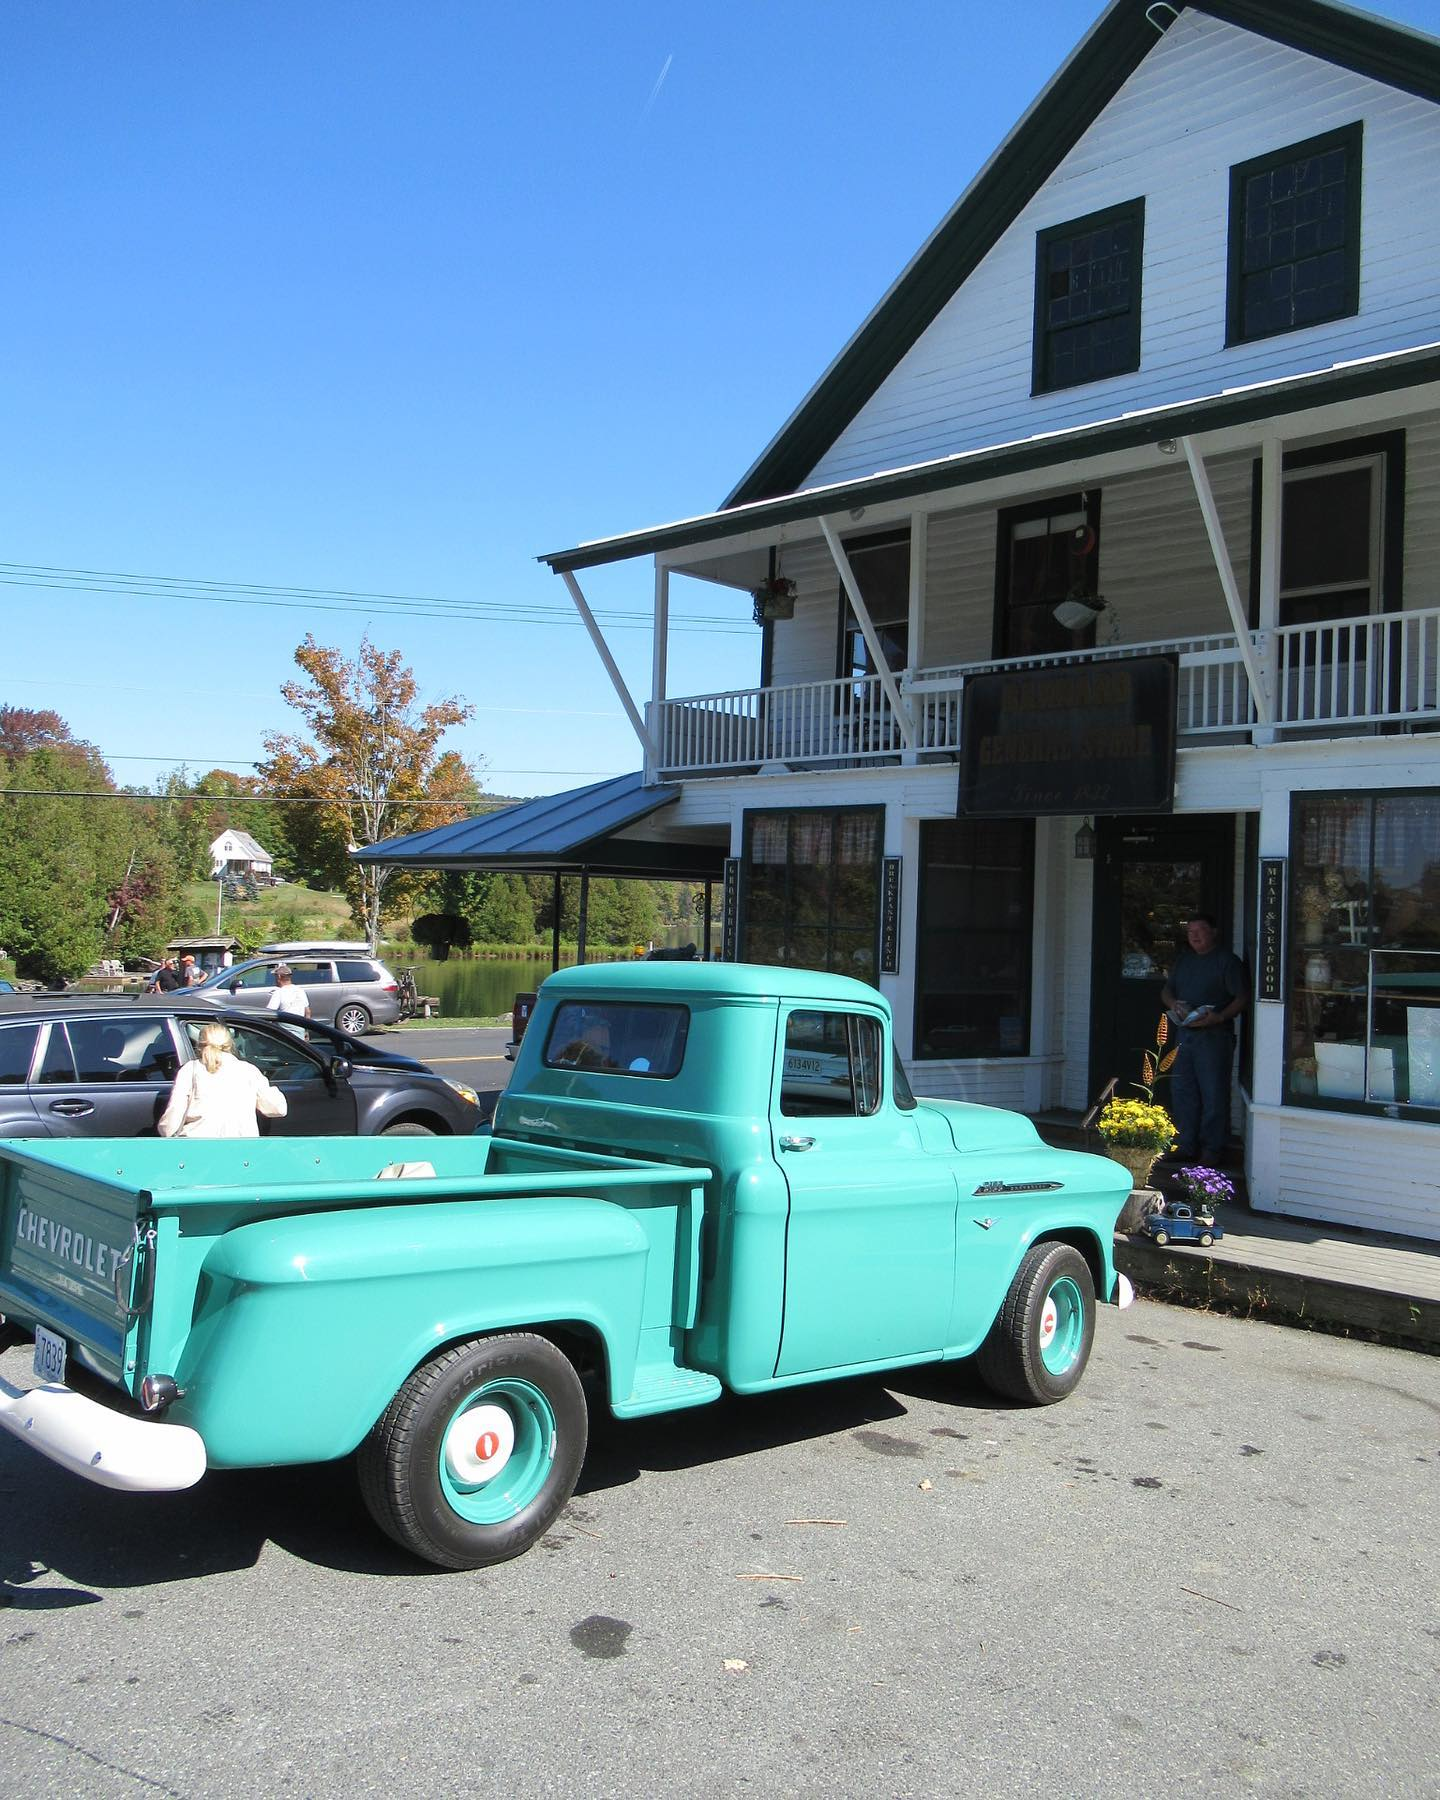 You Must Visit The Barnard General Store, One Of The Oldest And Finest General Stores In Vermont